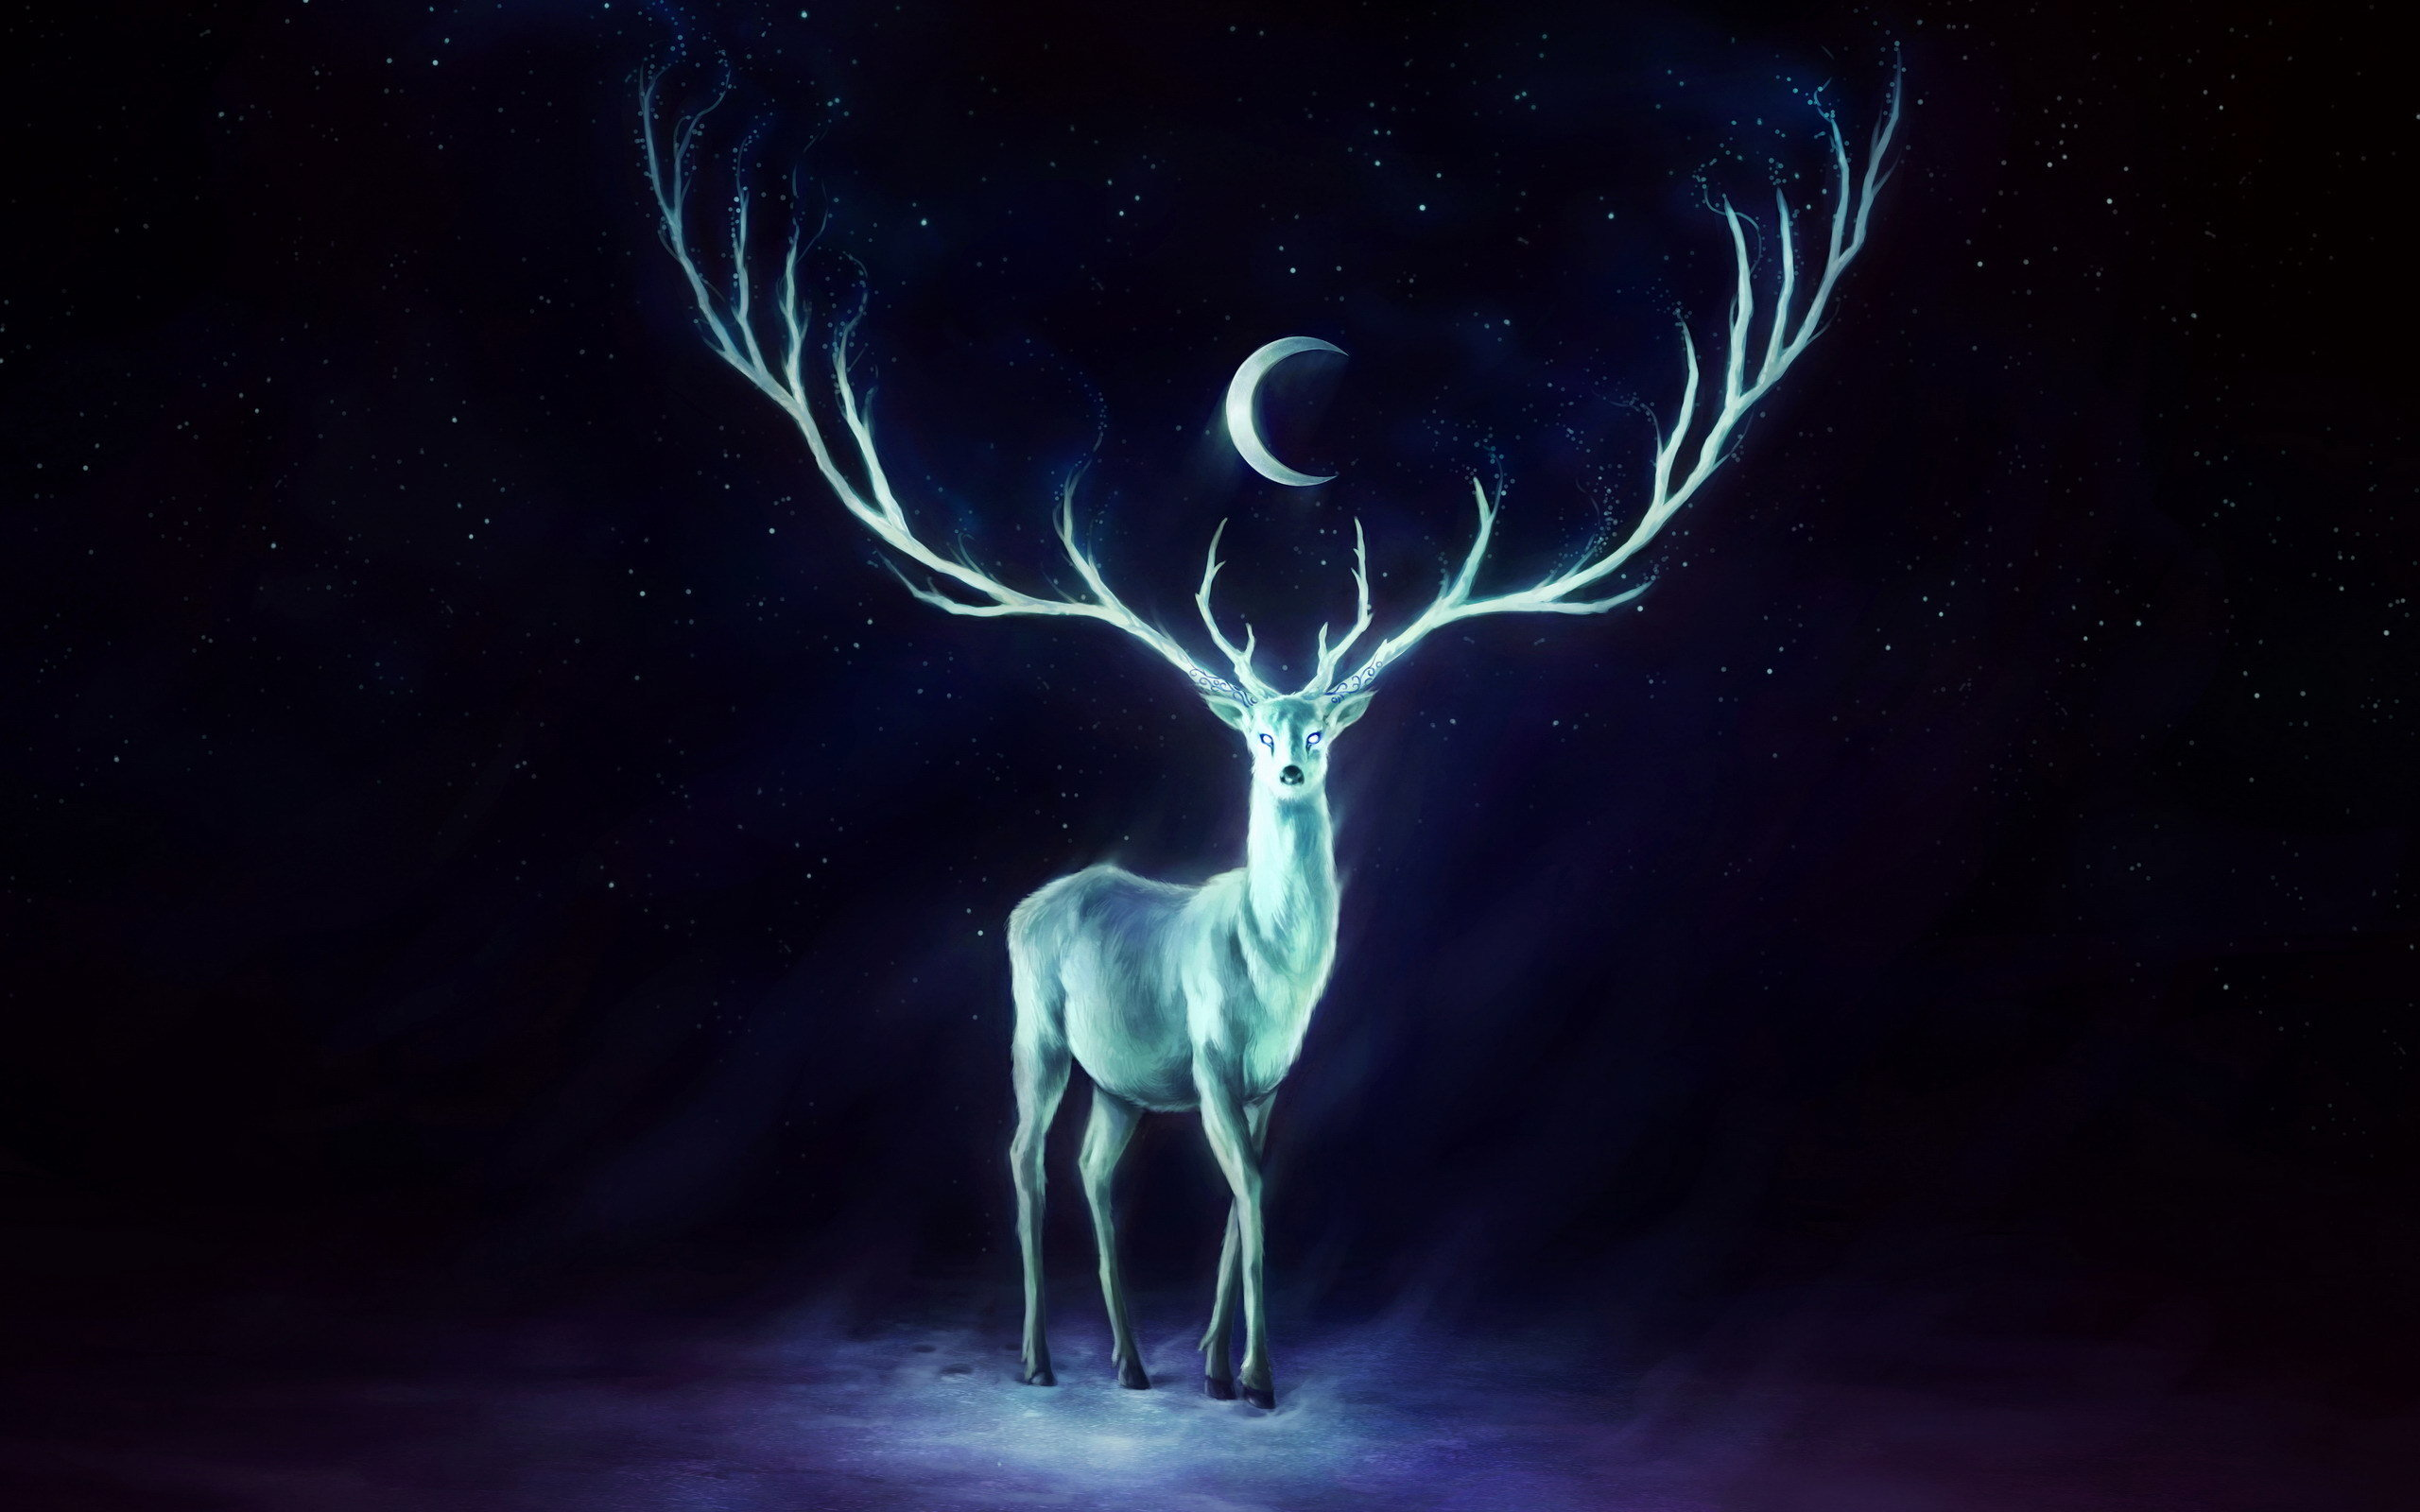 Awesome Deer Fantasy free wallpaper ID:96877 for hd 2560x1600 PC